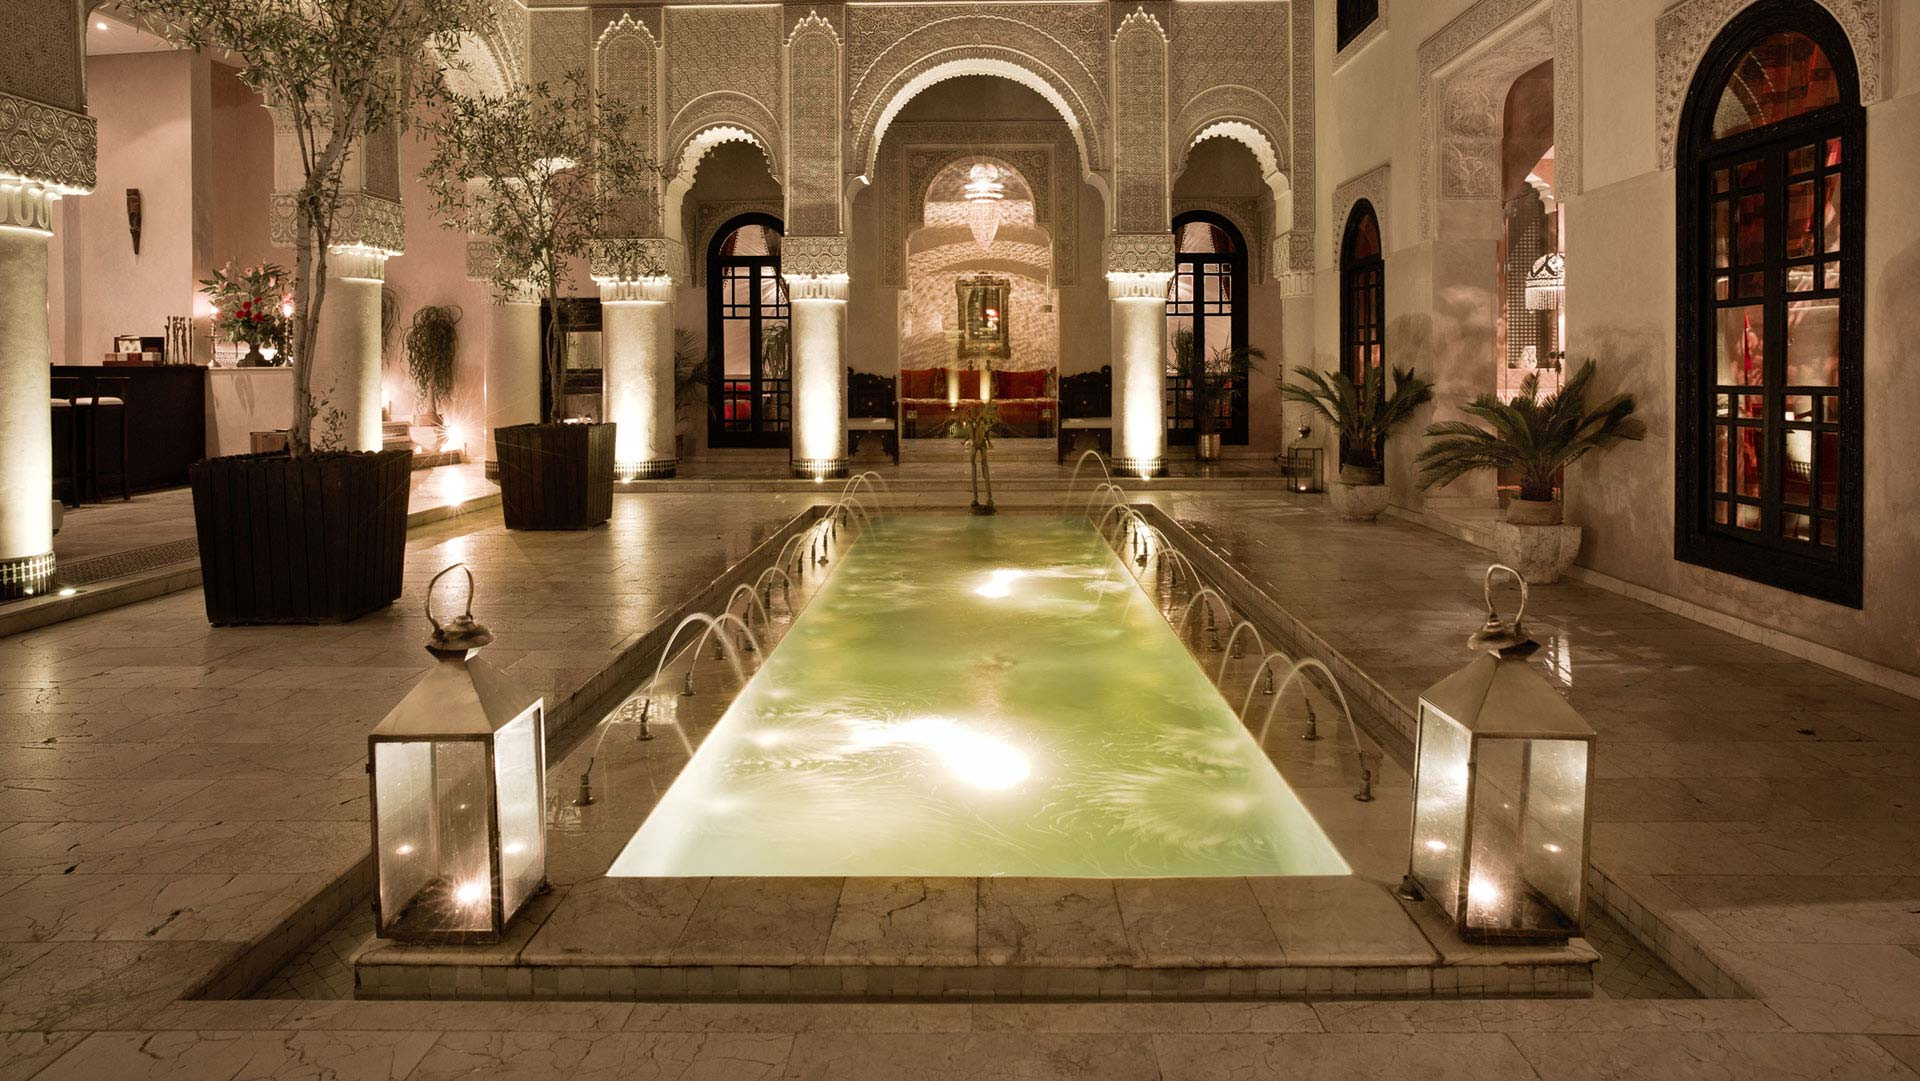 Riad Fes Pool in Morocco